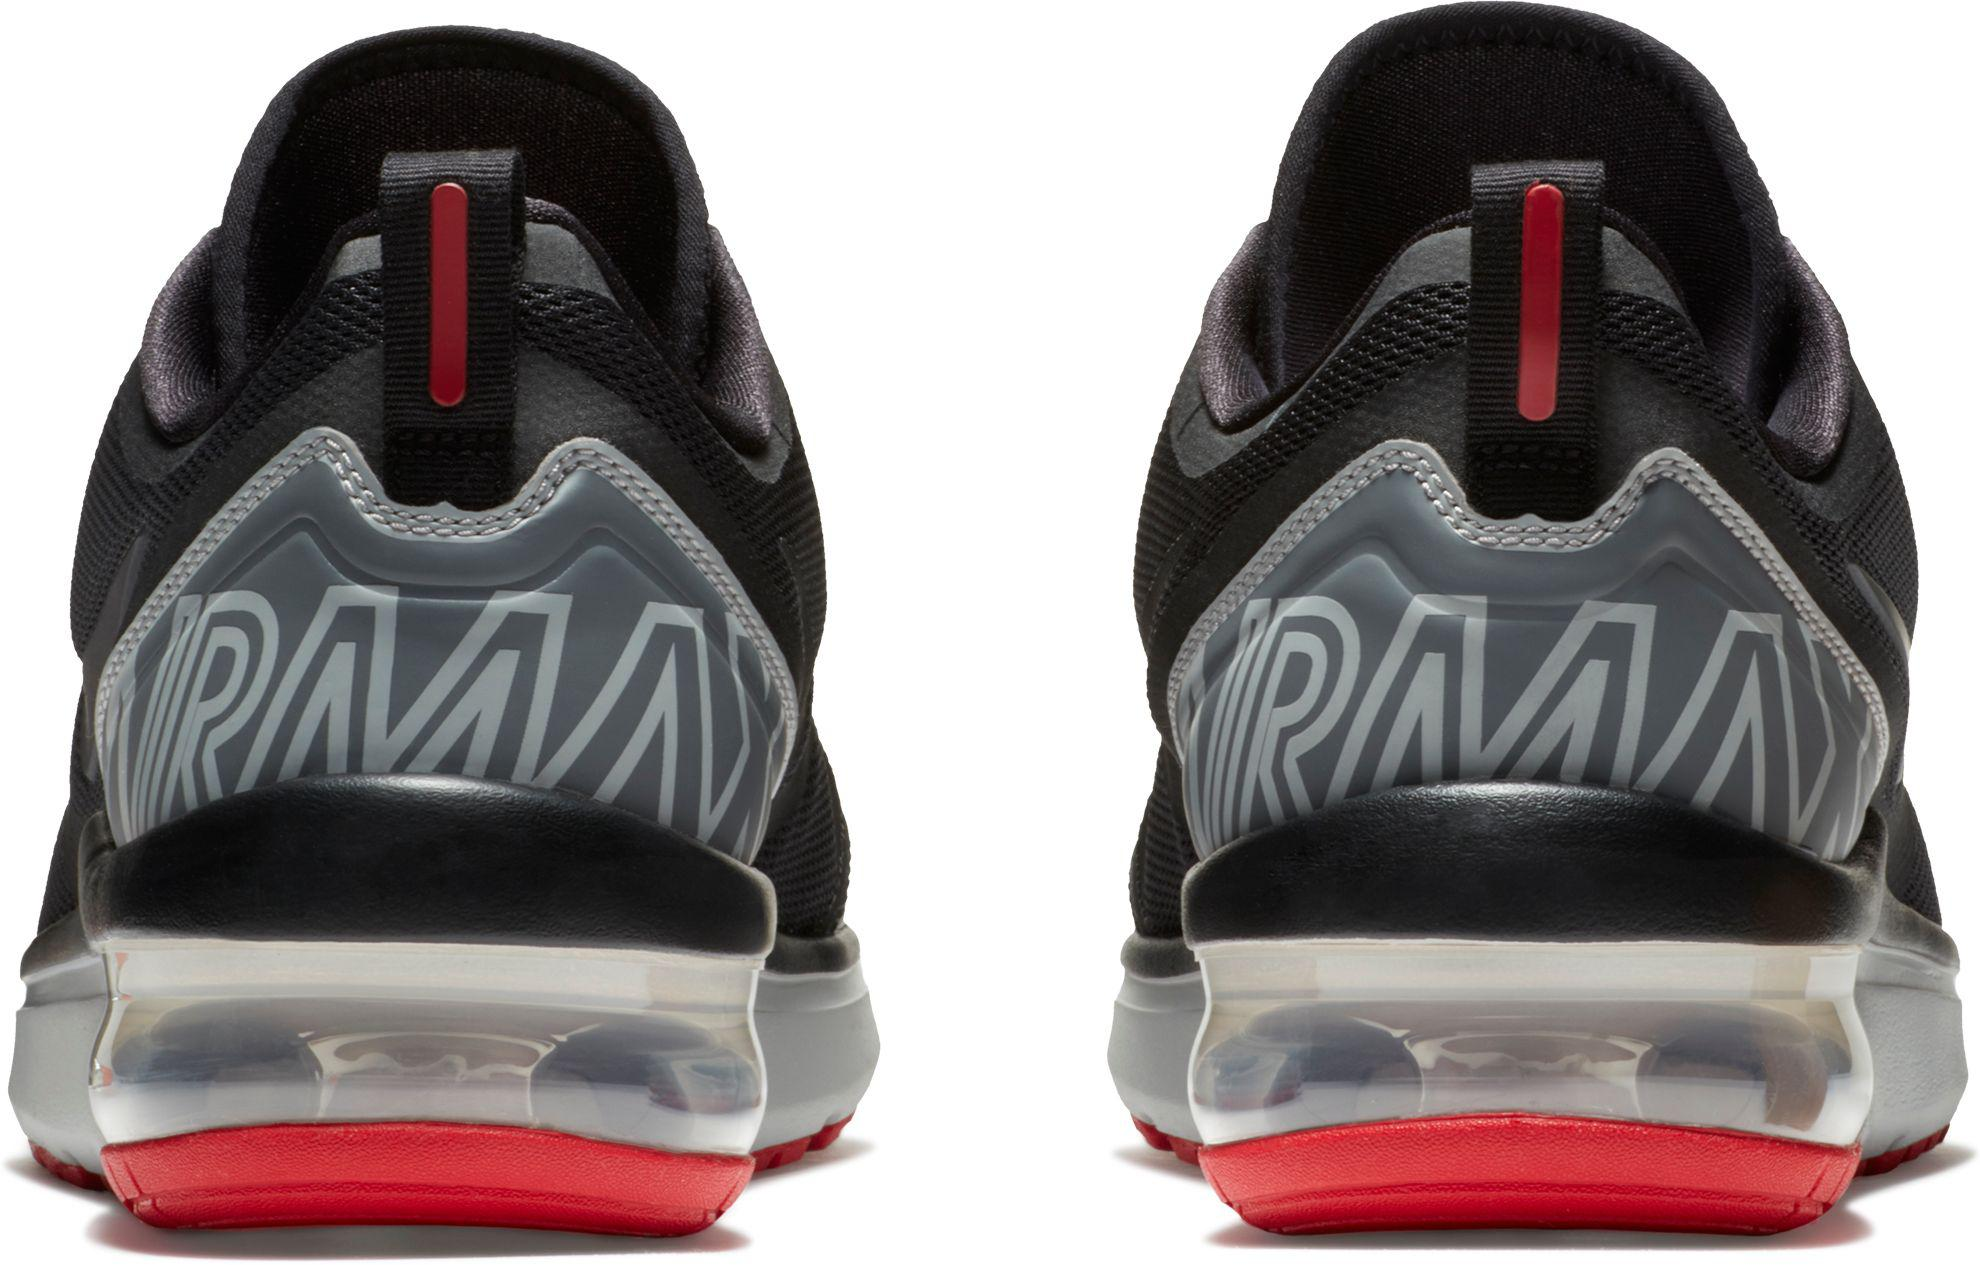 Lyst - Nike Air Max Fury Running Shoes in Black for Men e05eb1a0e